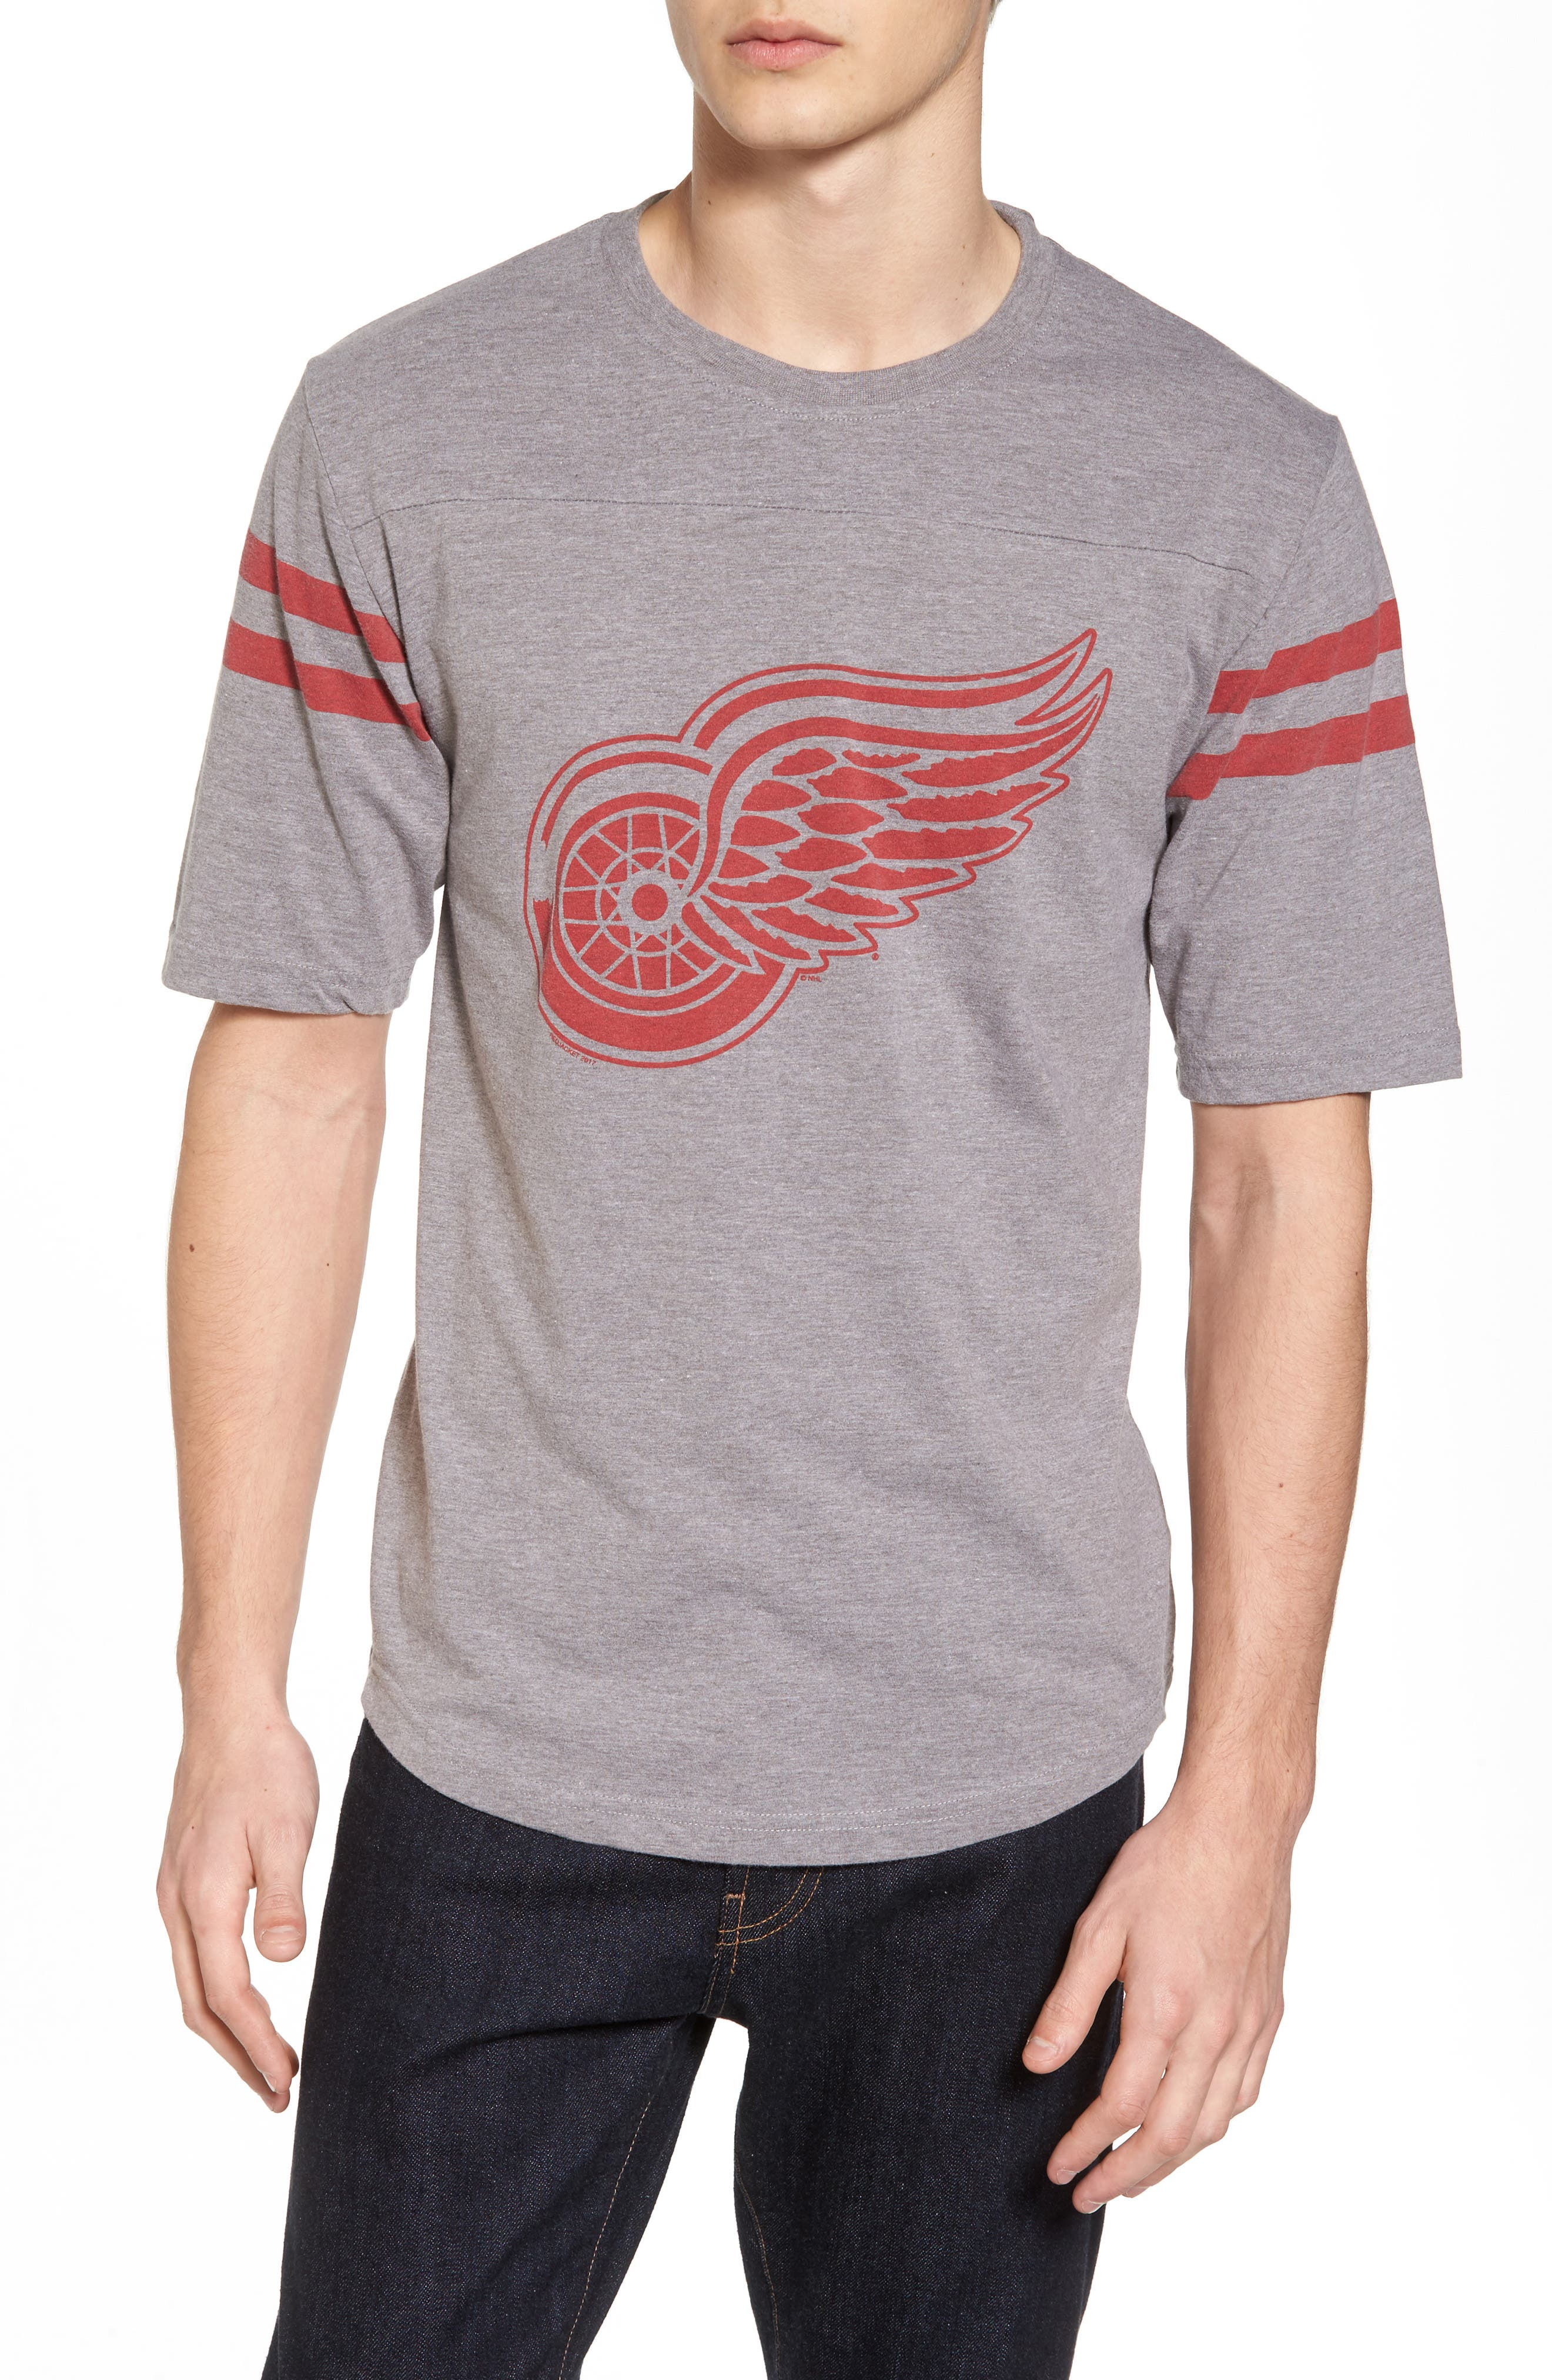 American Needle Crosby Detroit Red Wings T-Shirt